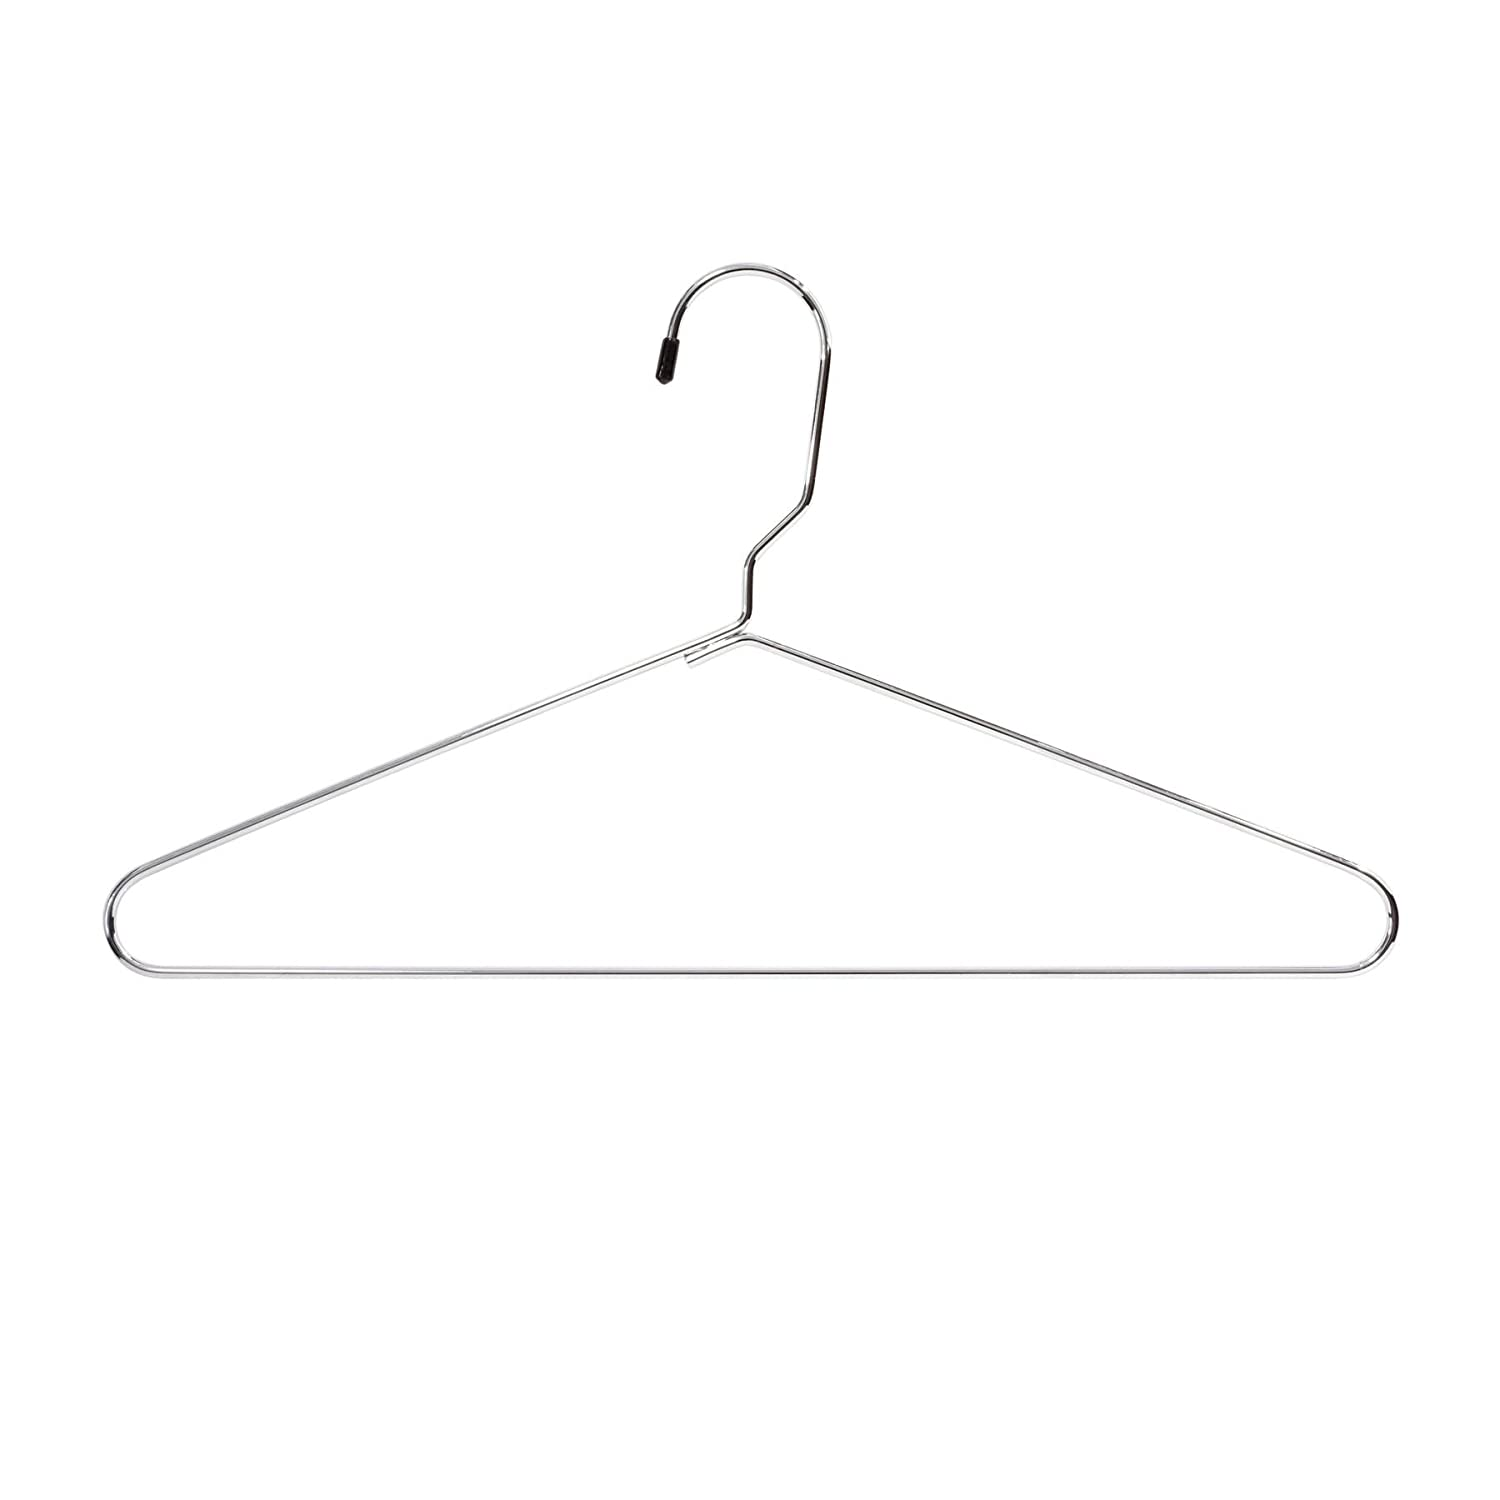 Safco Products 4245CR Metal Heavy-Duty Hangers, 12 each Chrome